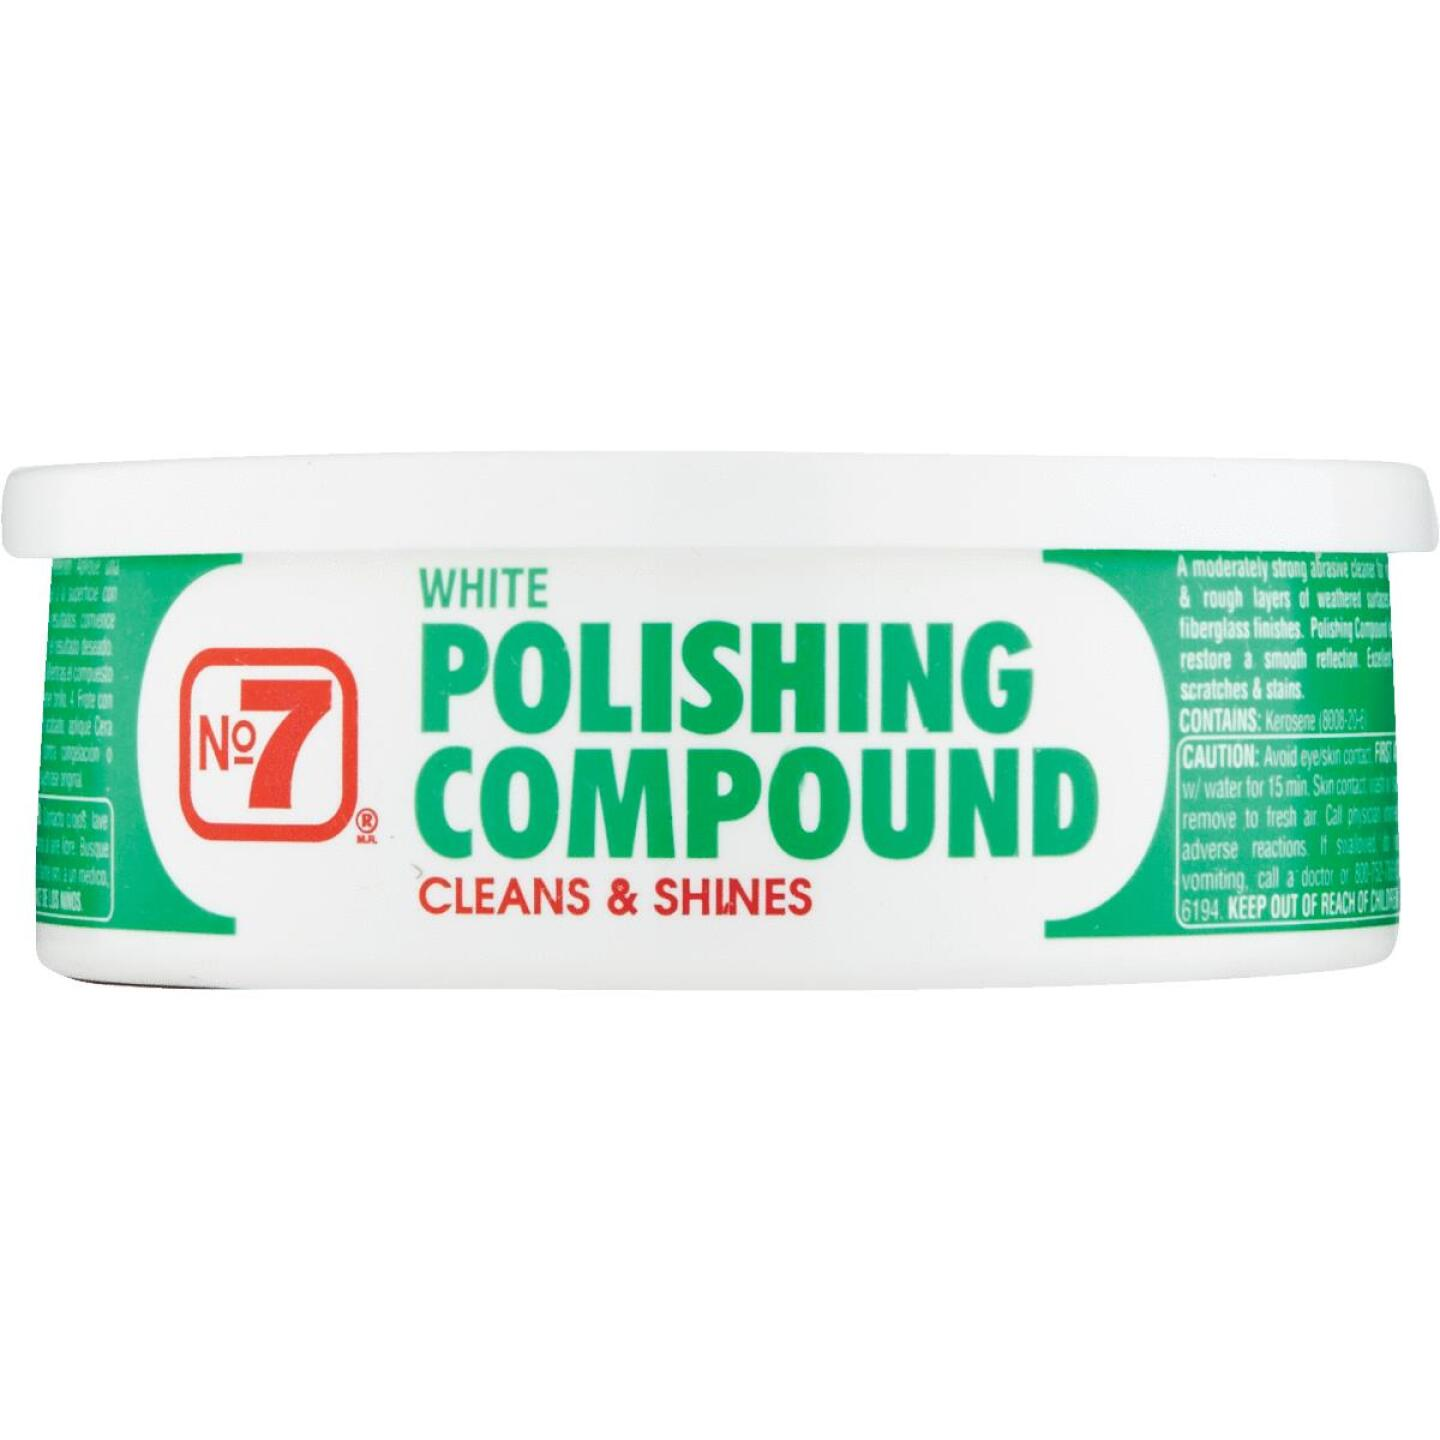 NO. 7,  10 oz Paste White Polishing Compound Image 2